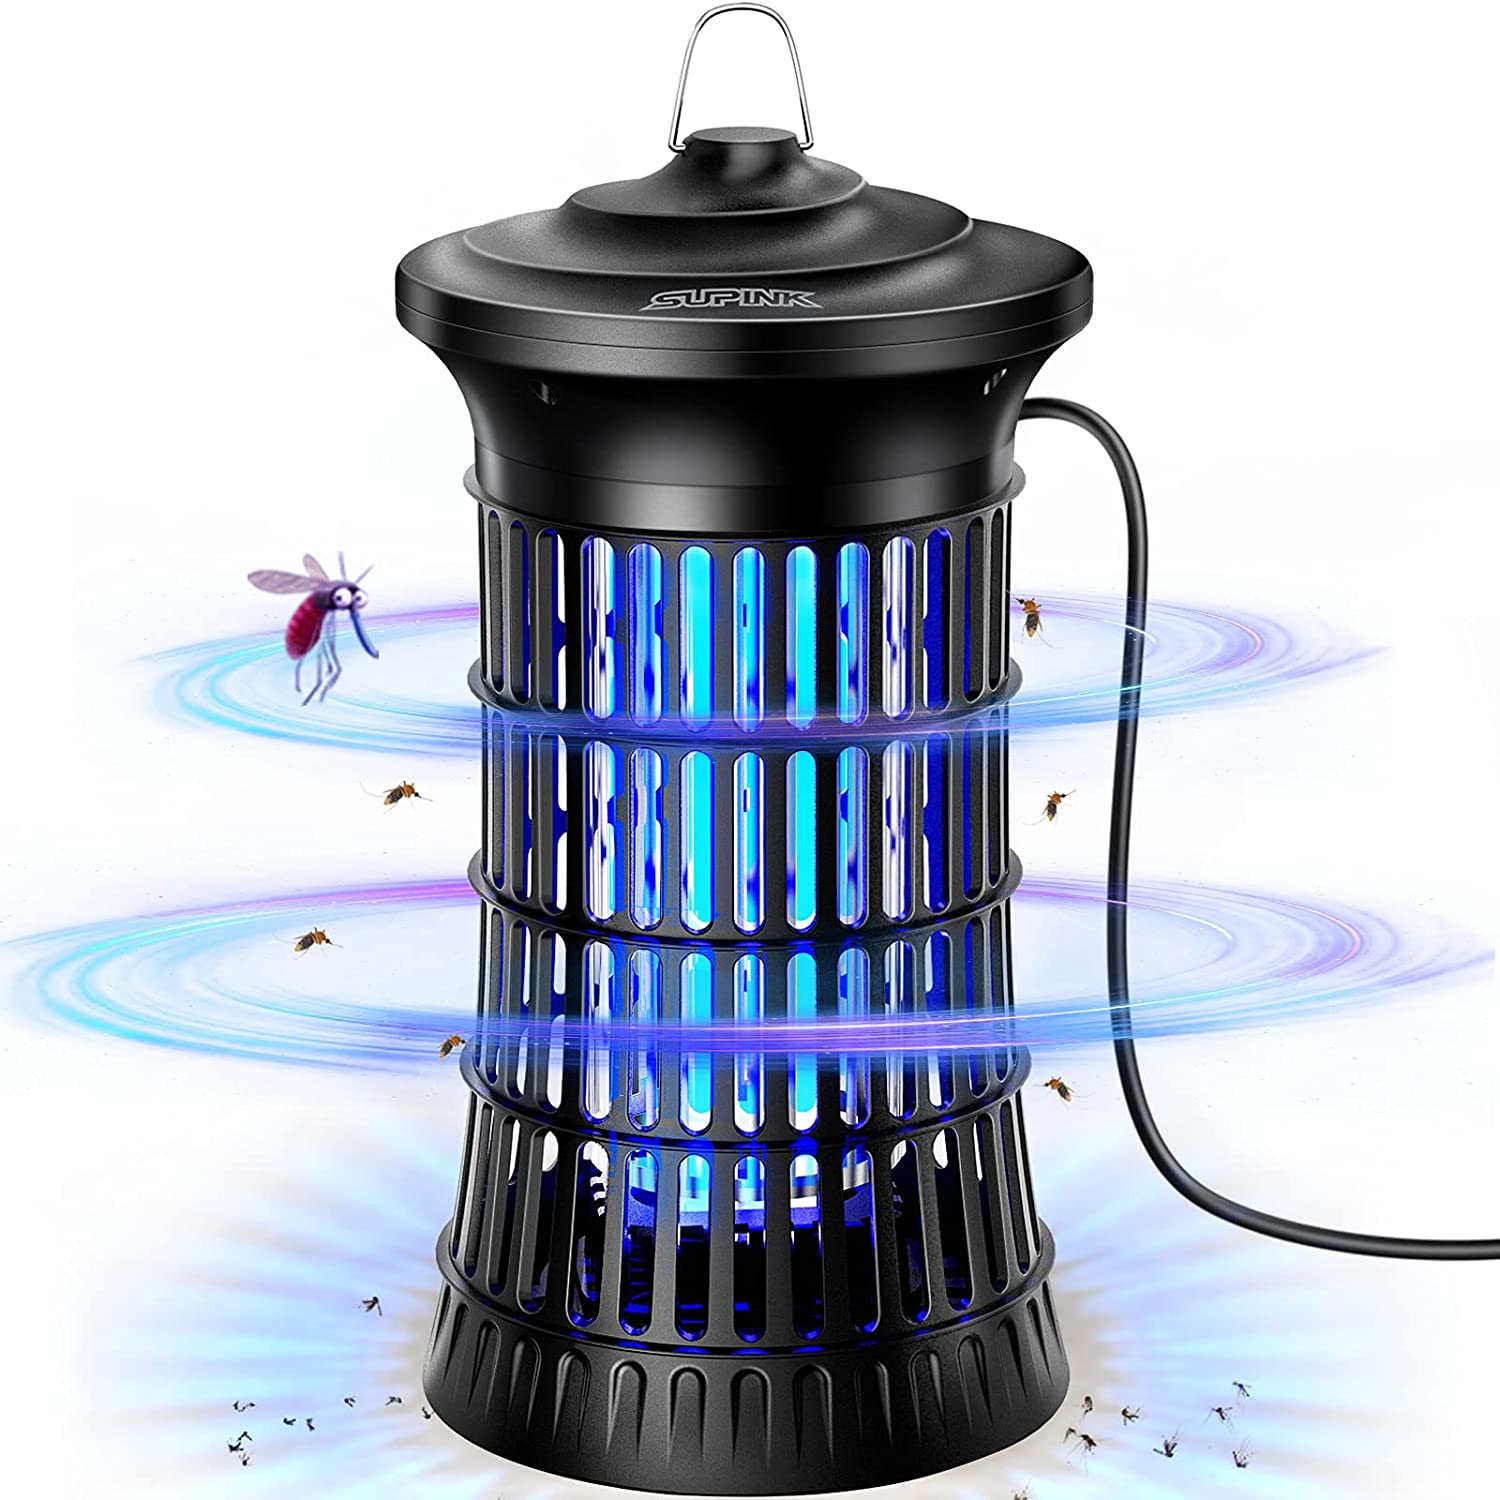 Supink Bug Zapper for Outdoor & Indoor, Electric Mosquito Zapper Fly Insect Killer Lamp (4200V High Powered), Waterproof Mosquito Traps with 18W Light Buld for Home, Garden, Backyard, Patio, Bedroom